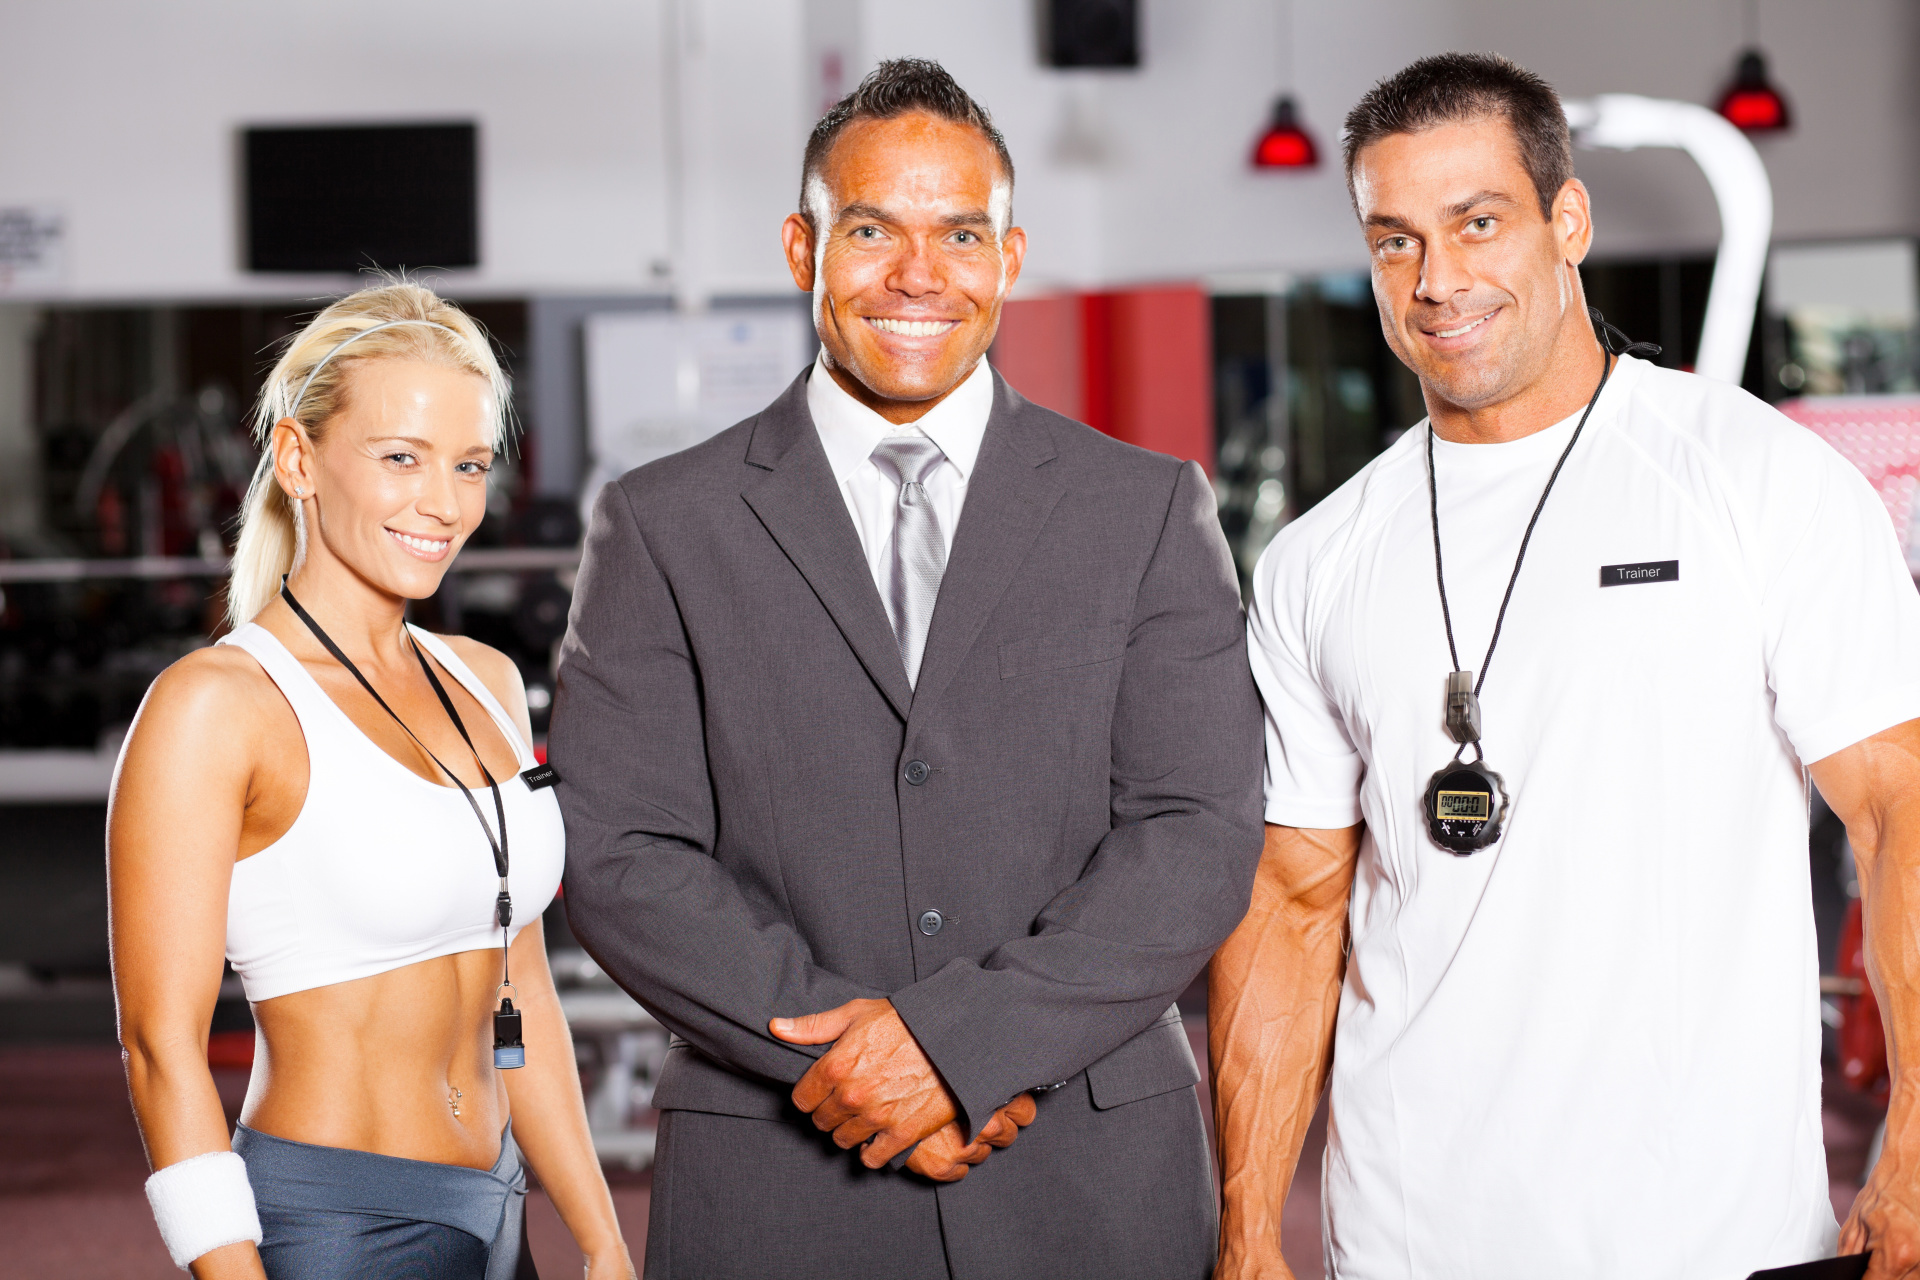 Supplement Manufacturers In Canada